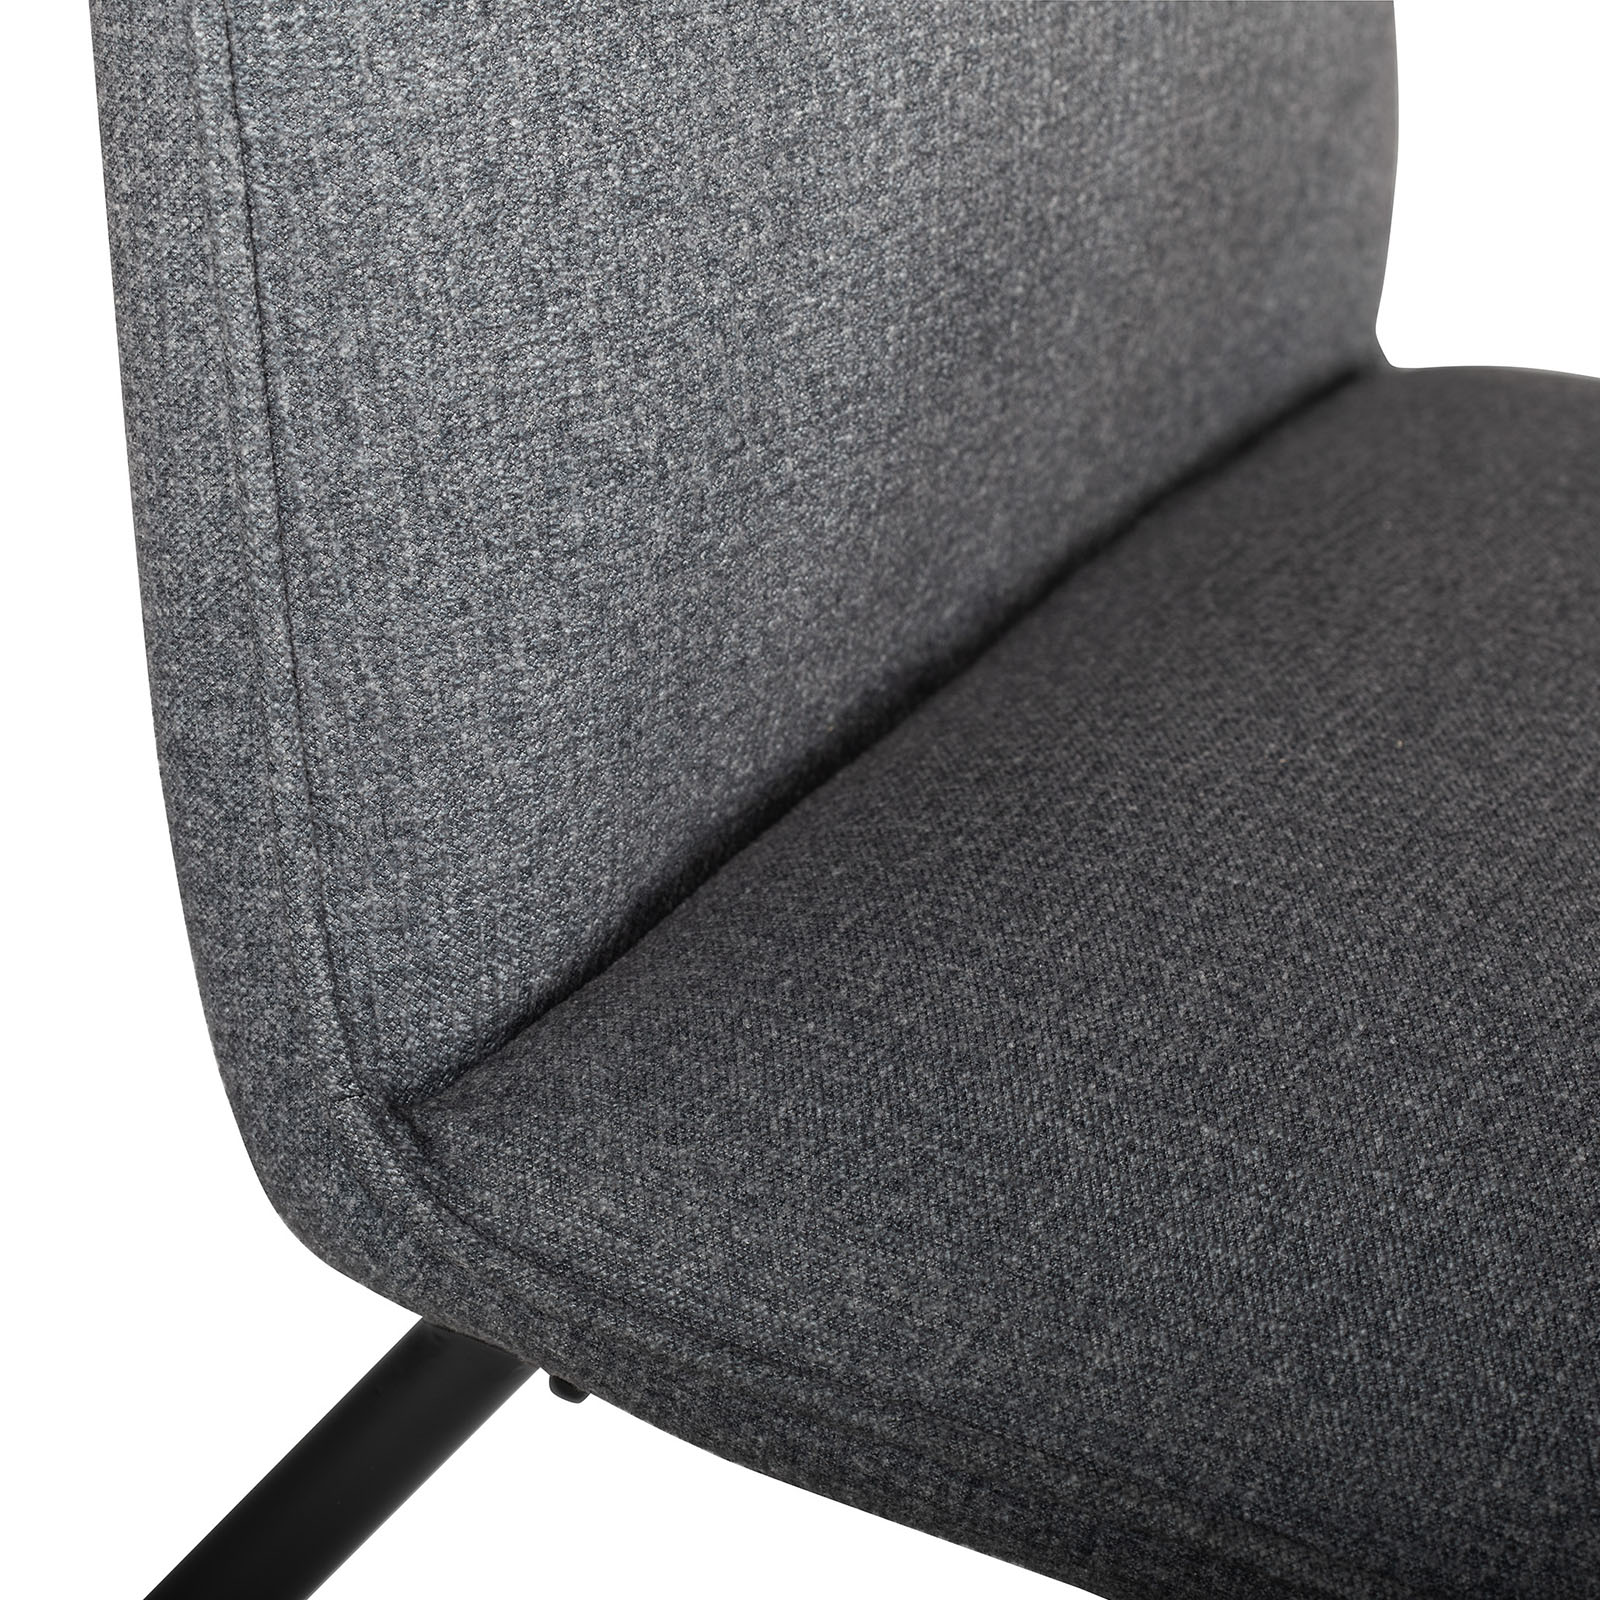 70205 Niche Accent Chair detail1